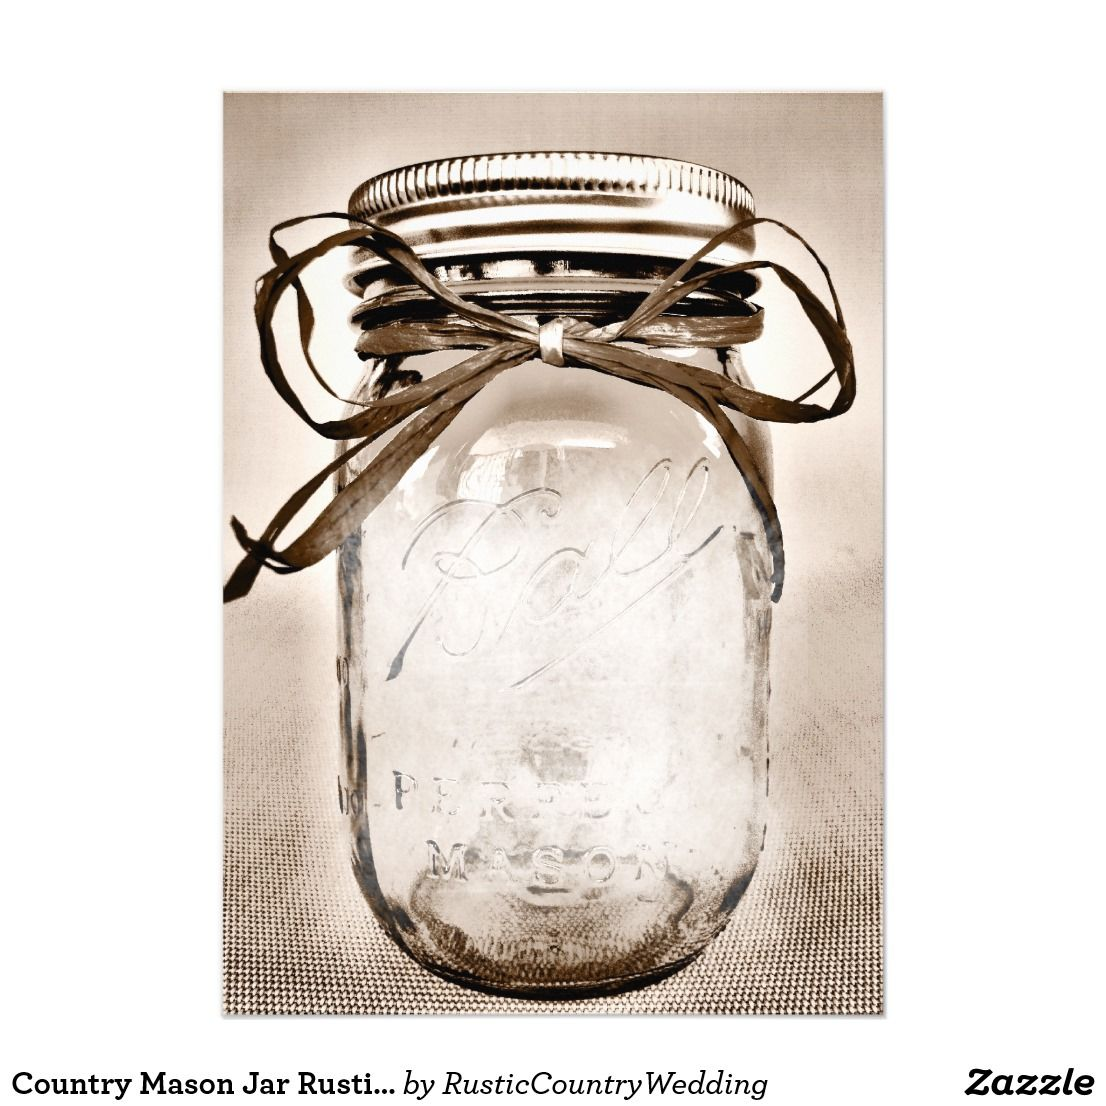 Country Mason Jar Rustic Invitation Blank Template  Zazzle.com